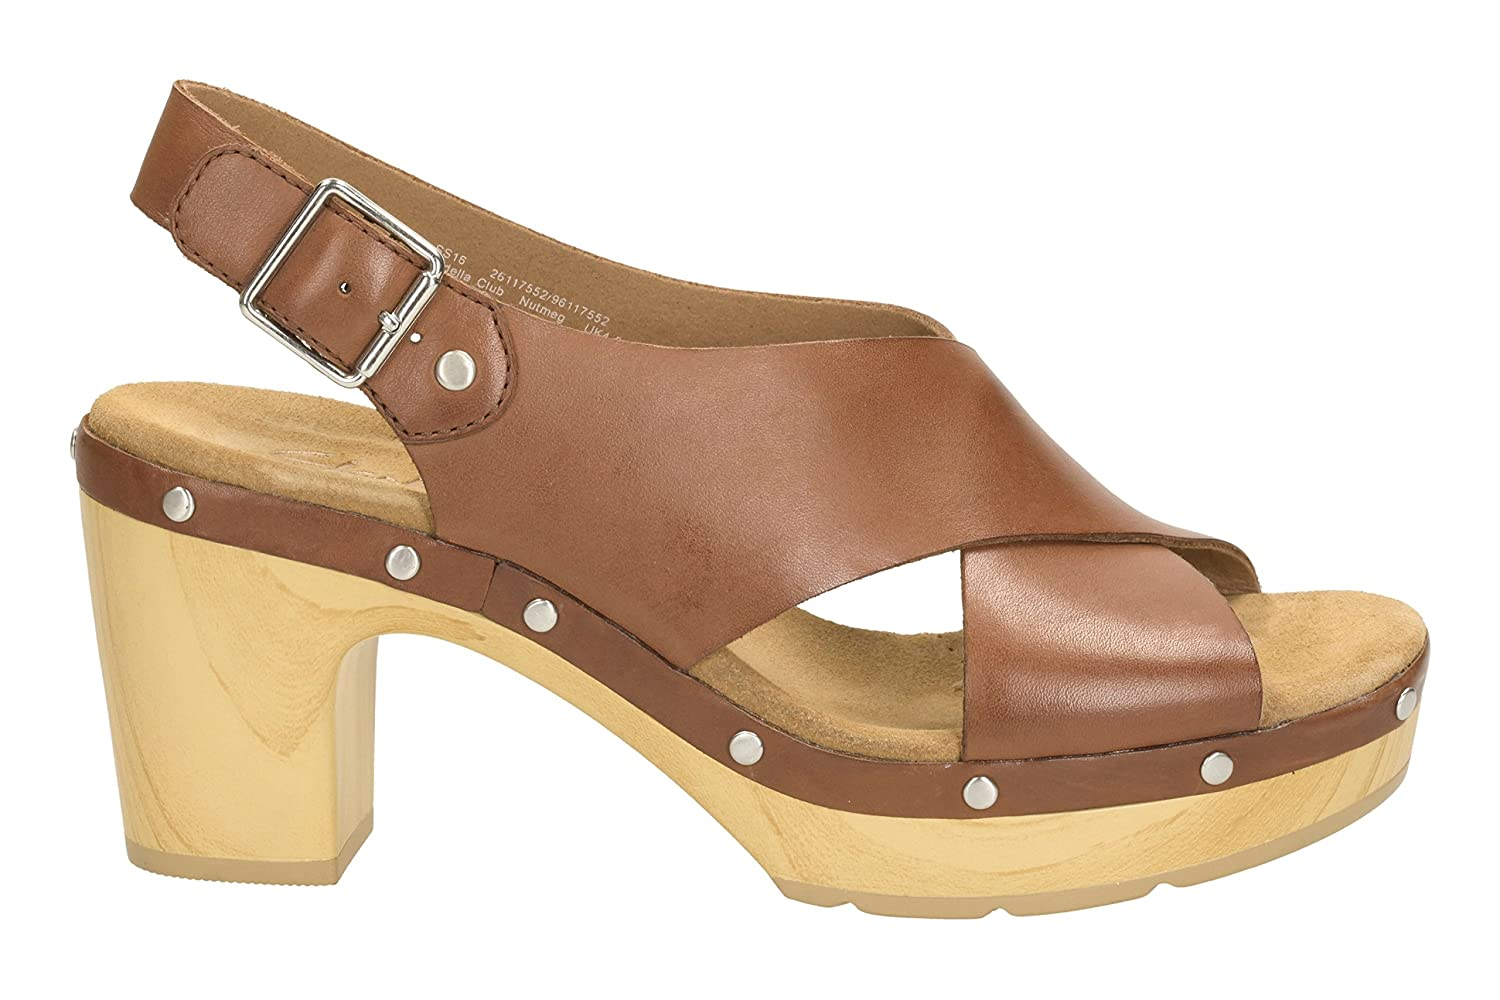 8f292855fc0 Clarks Womens Casual Clarks Ledella Club Leather Sandals In Brown   Amazon.co.uk  Shoes   Bags